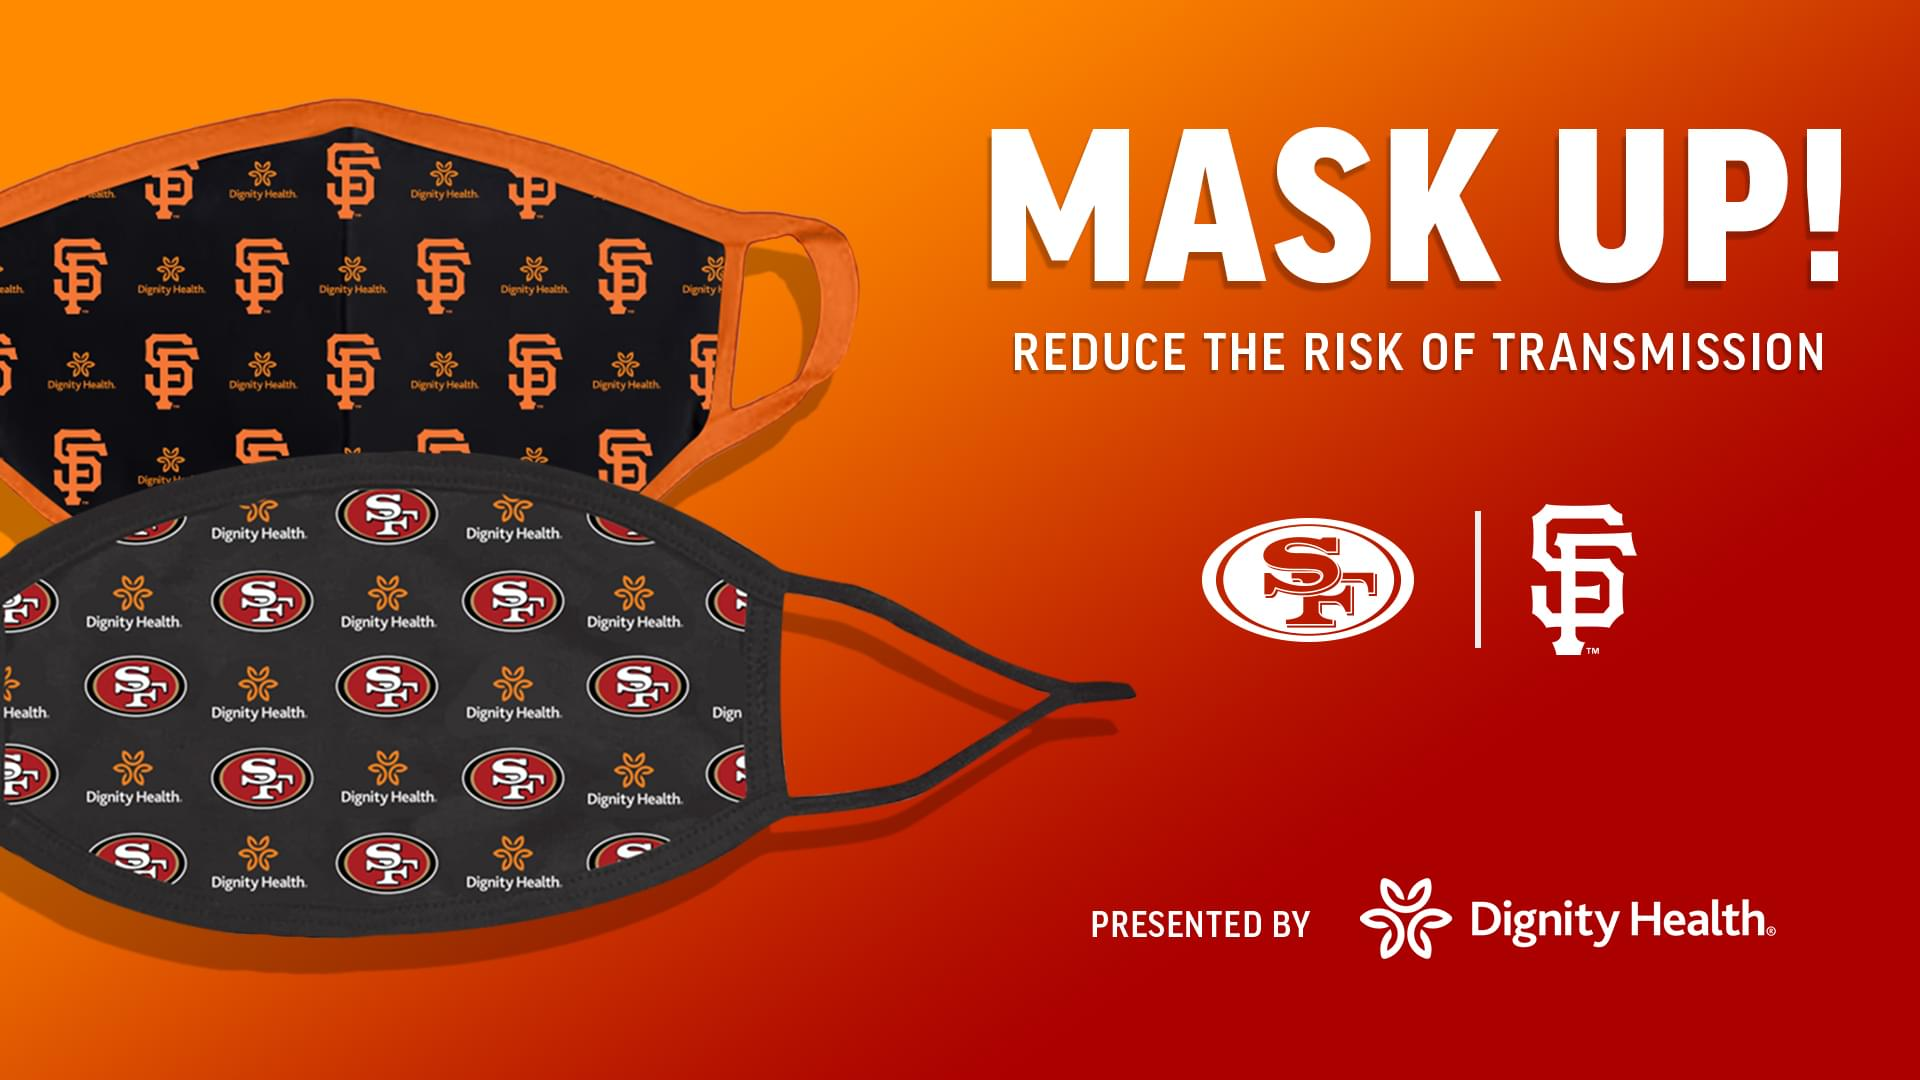 49ers CEO Jed York tells Mark Thompson about the Wear A Mask Campaign